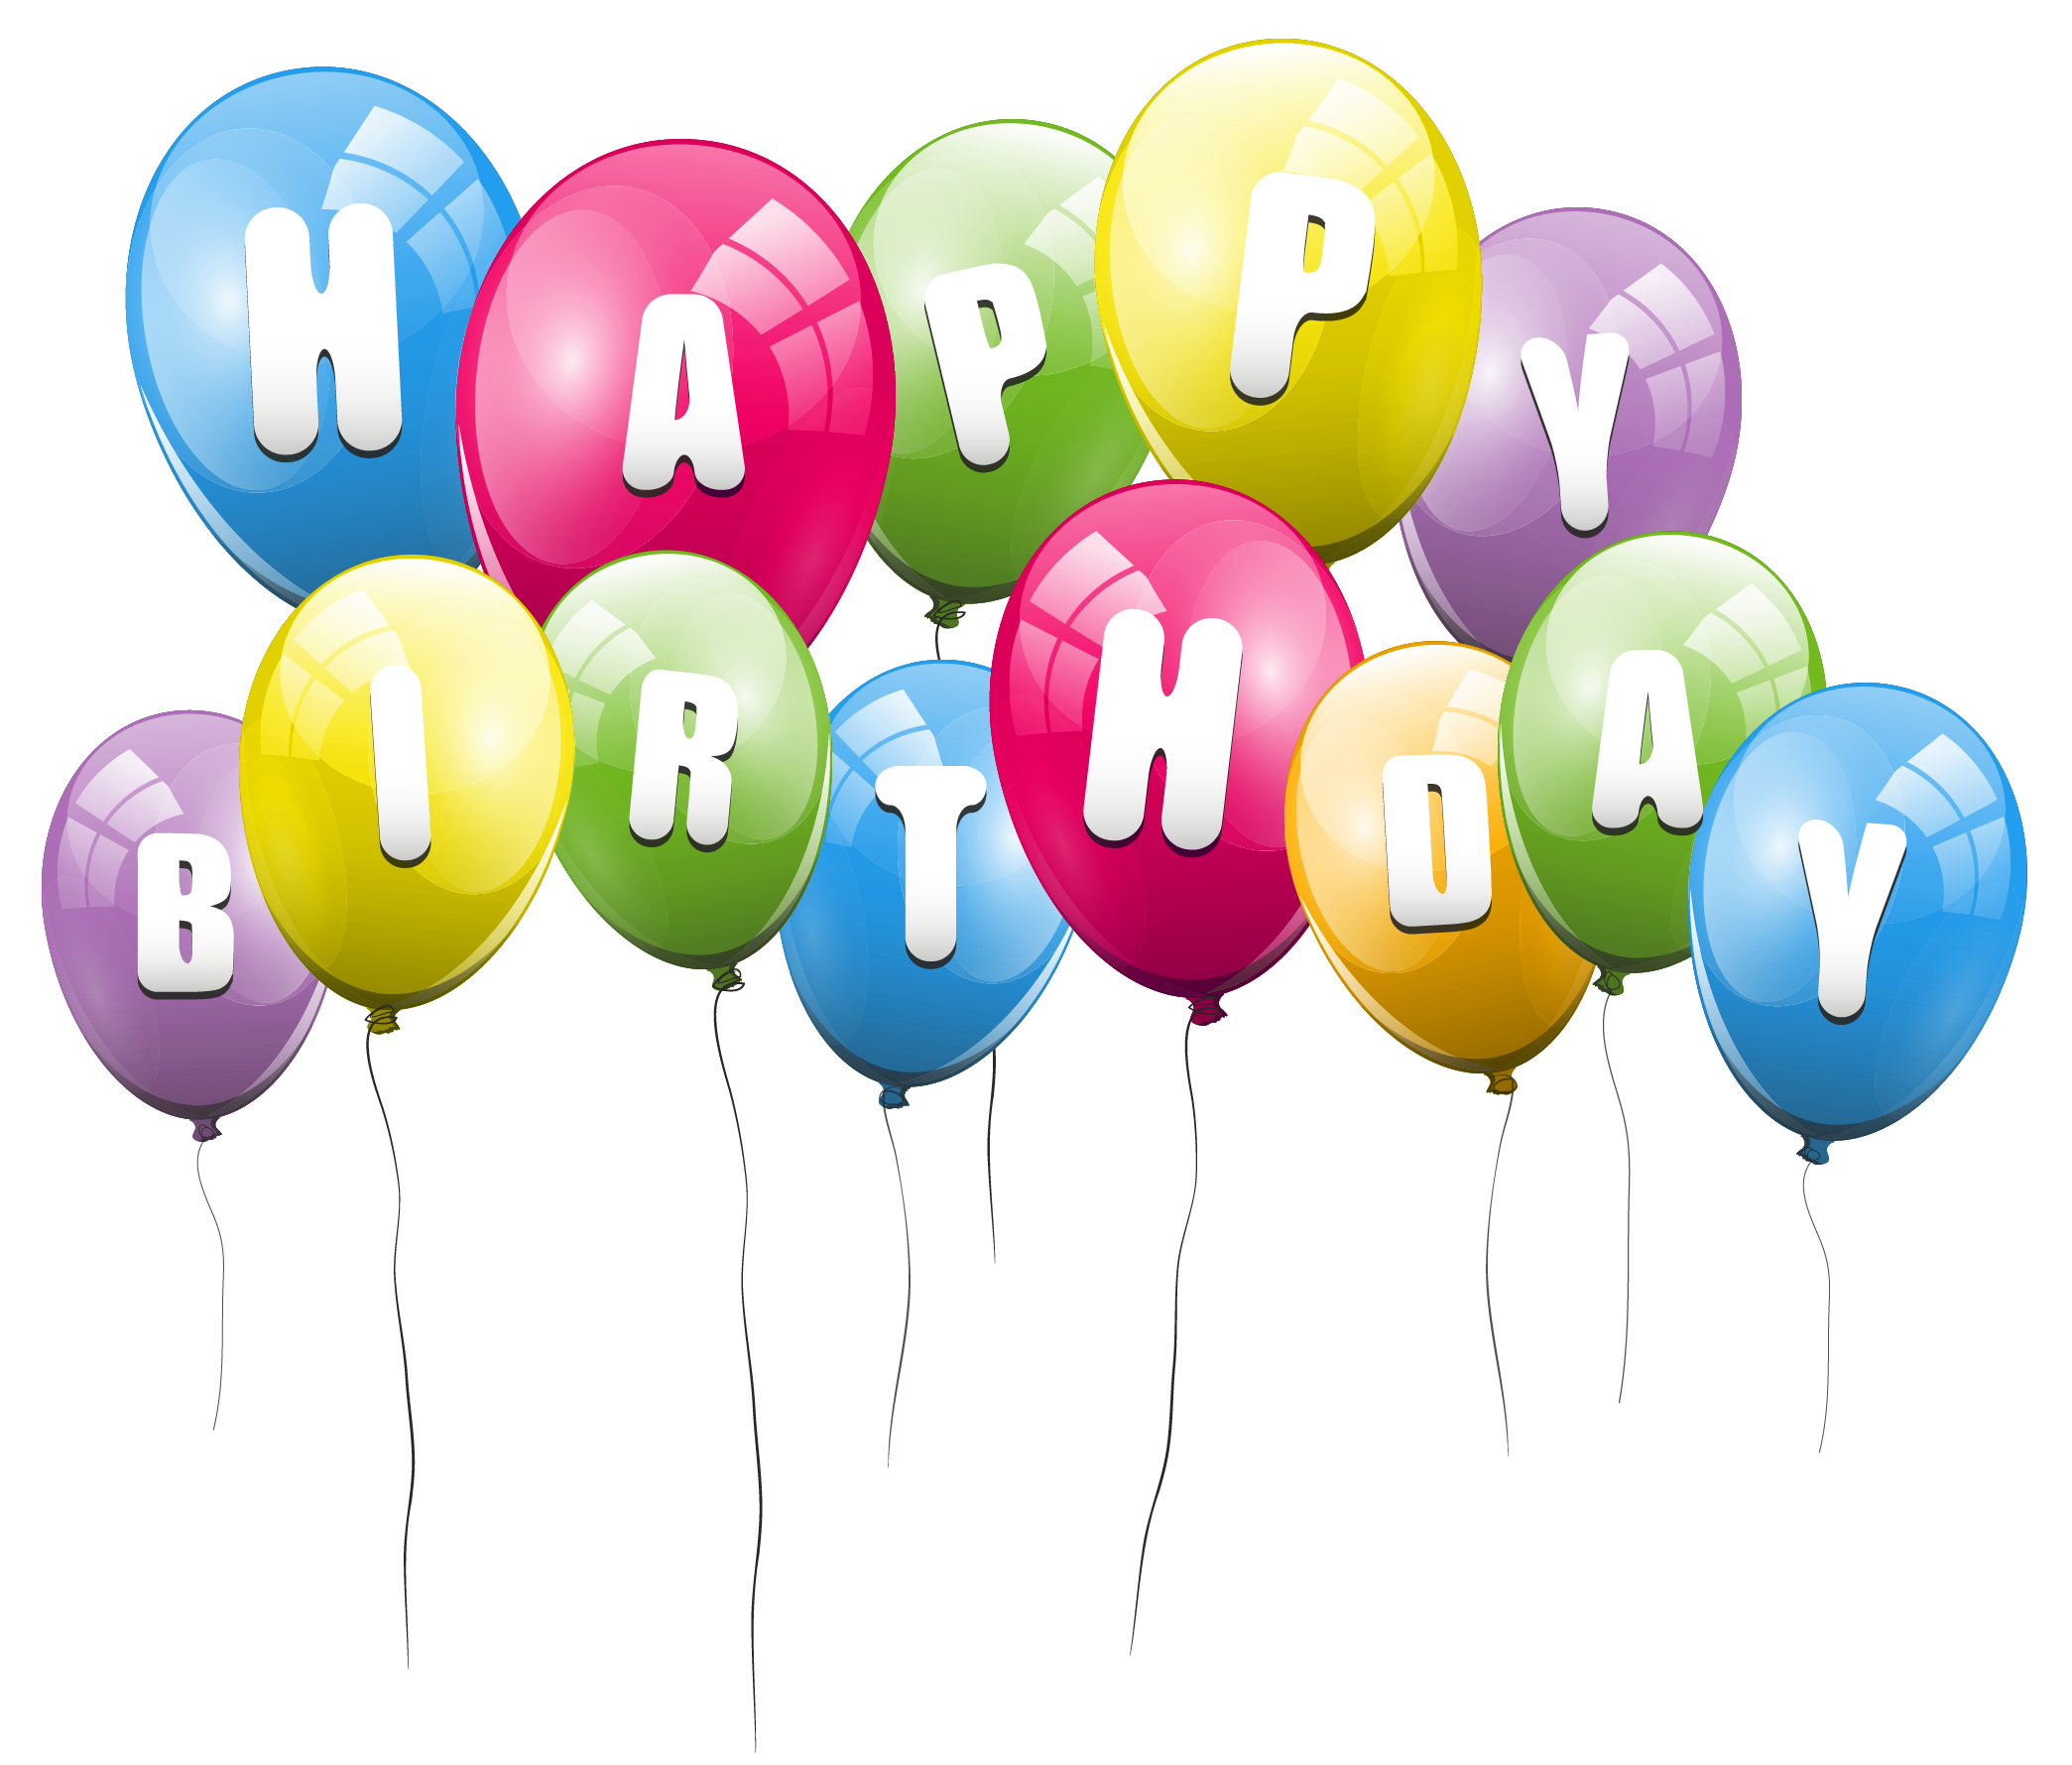 Transparent balloons happy png. Ballon clipart birthday accessory jpg library stock